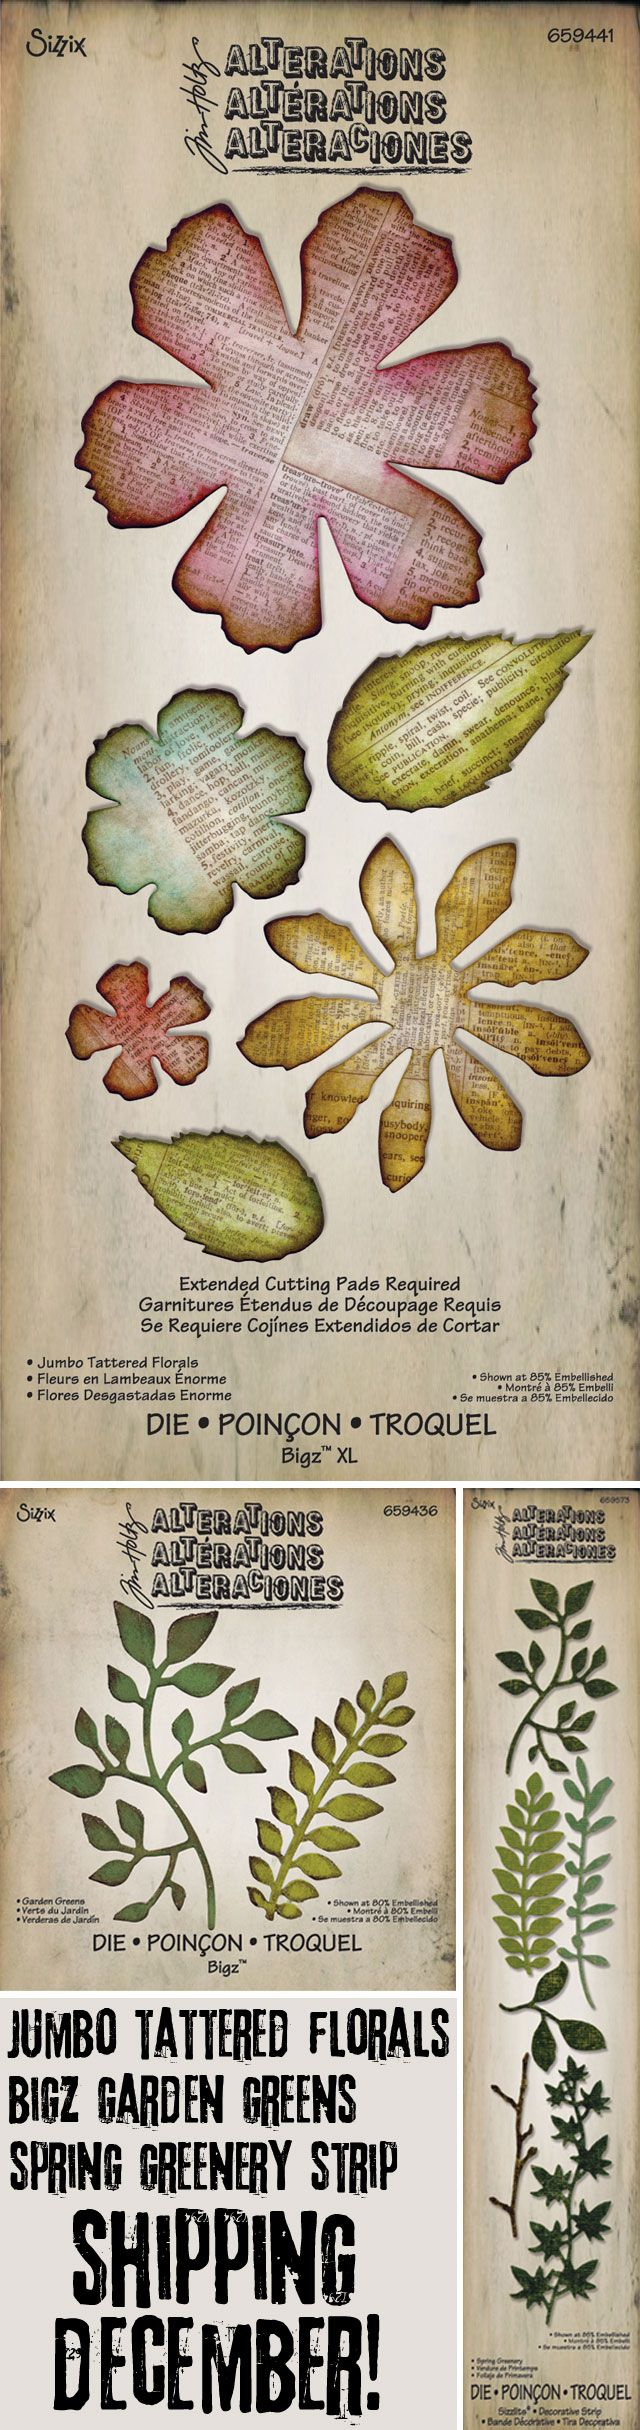 Introducing the new Jumbo Tattered Florals, Garden Greens, and Spring Greenery dies by Tim Holtz for Sizzix!